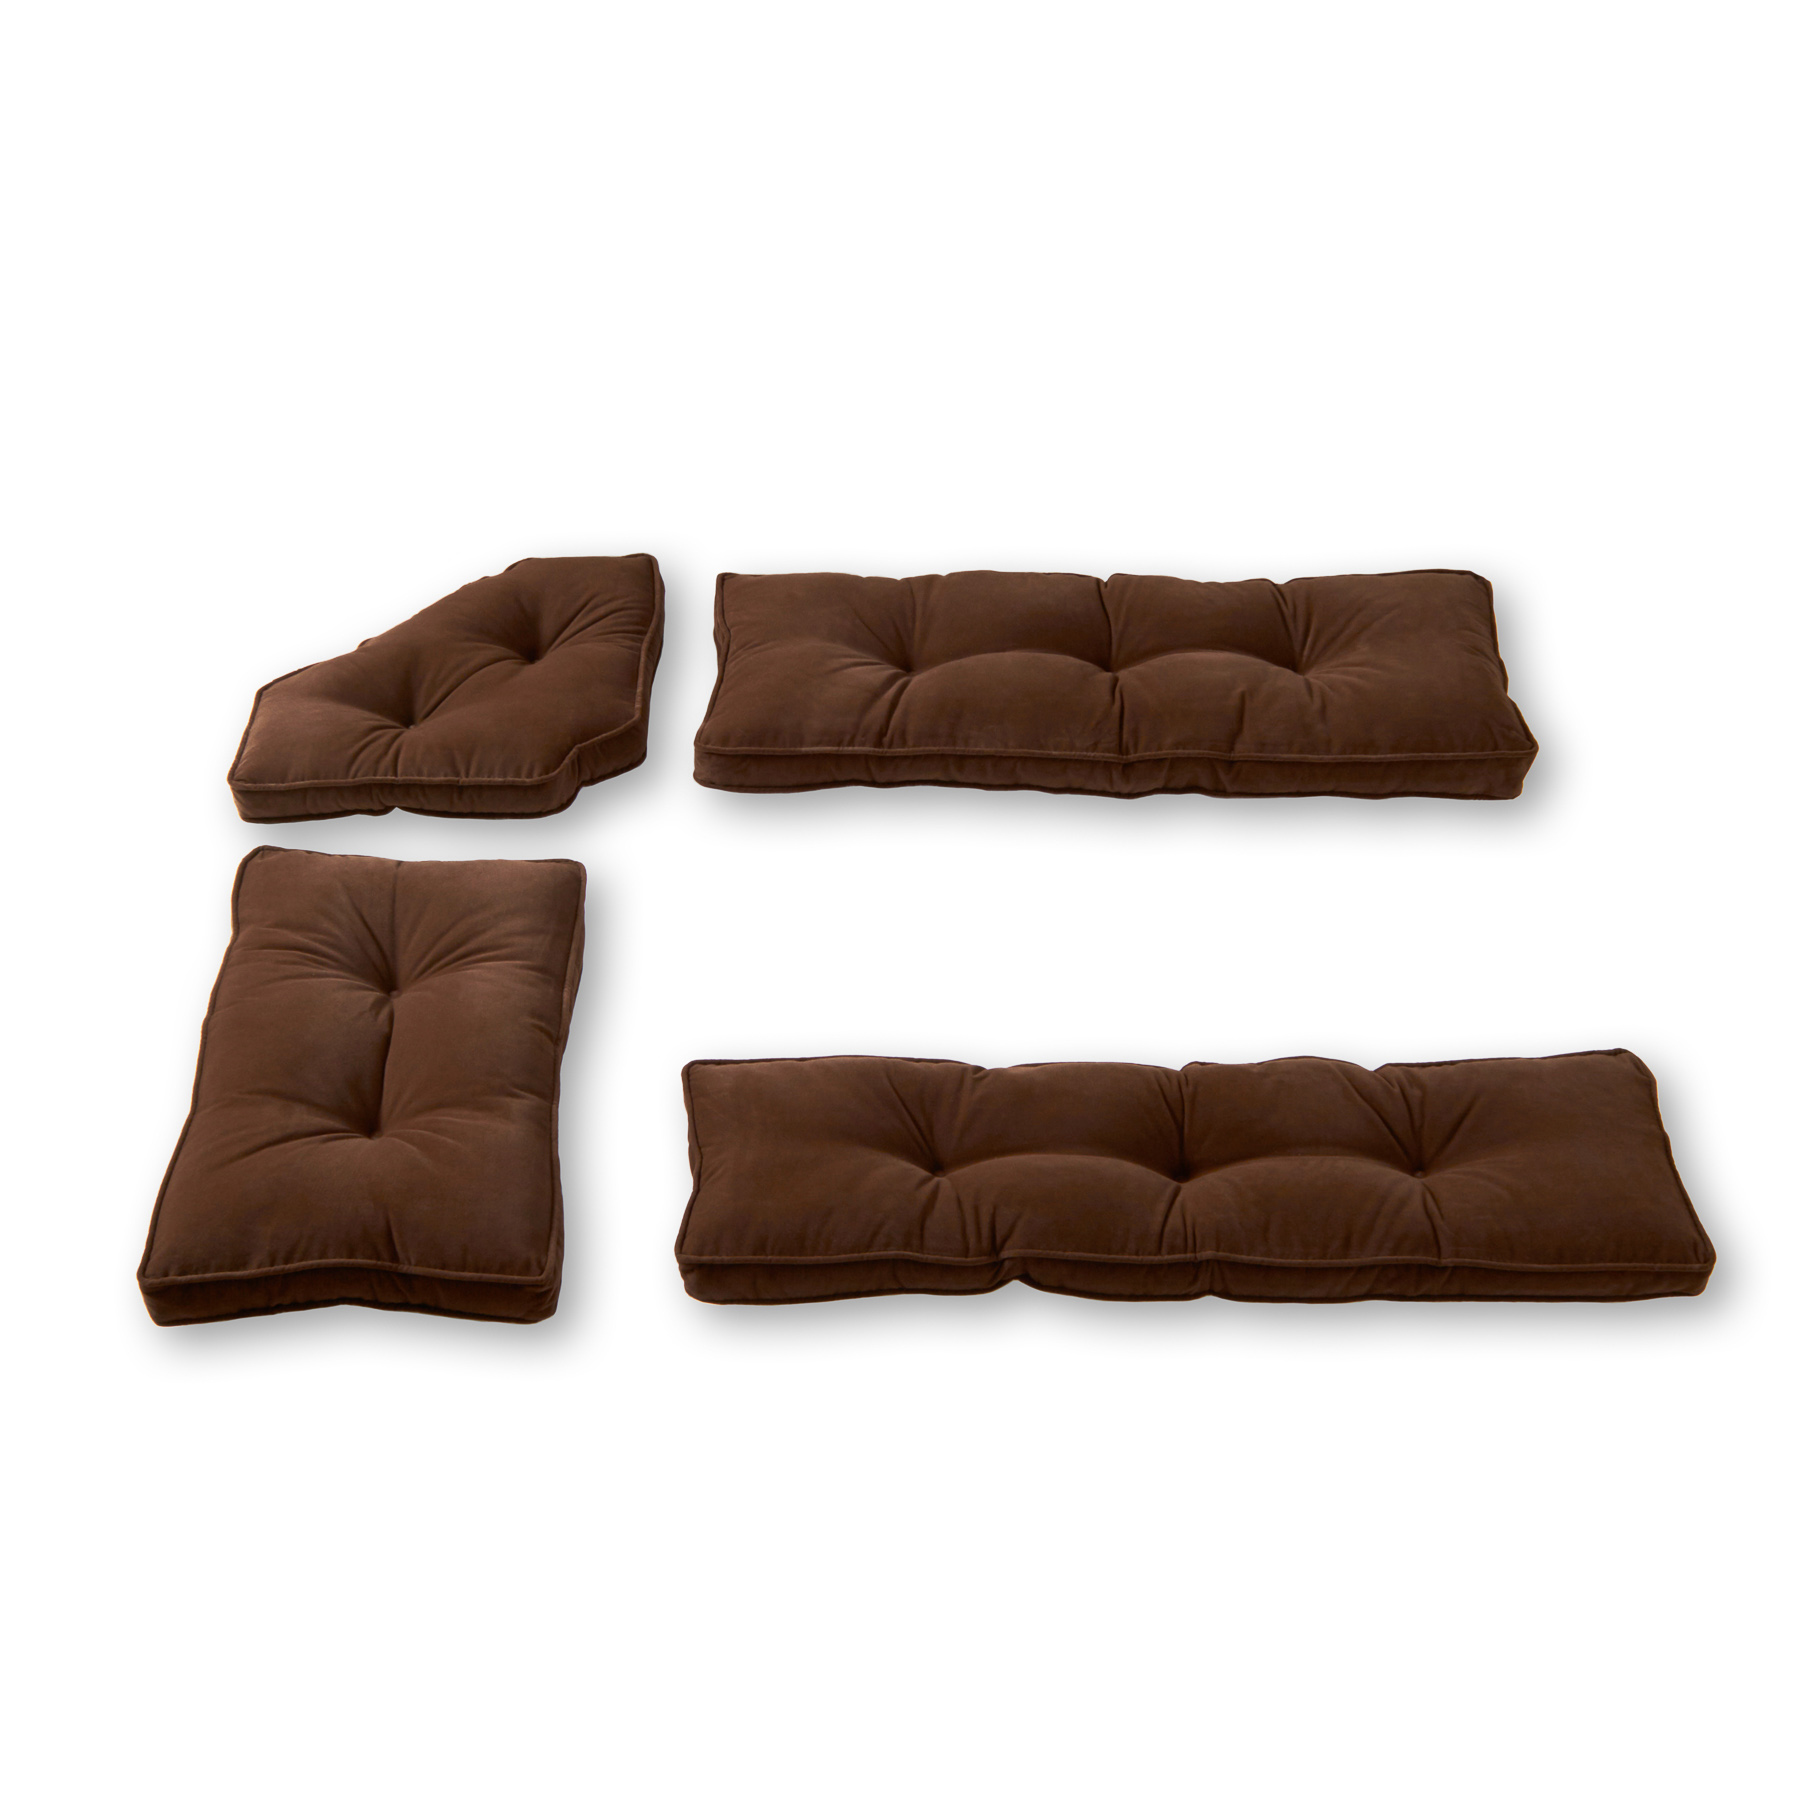 Hyatt 4-Piece Solid Microfiber Kitchen Nook Cushion Set